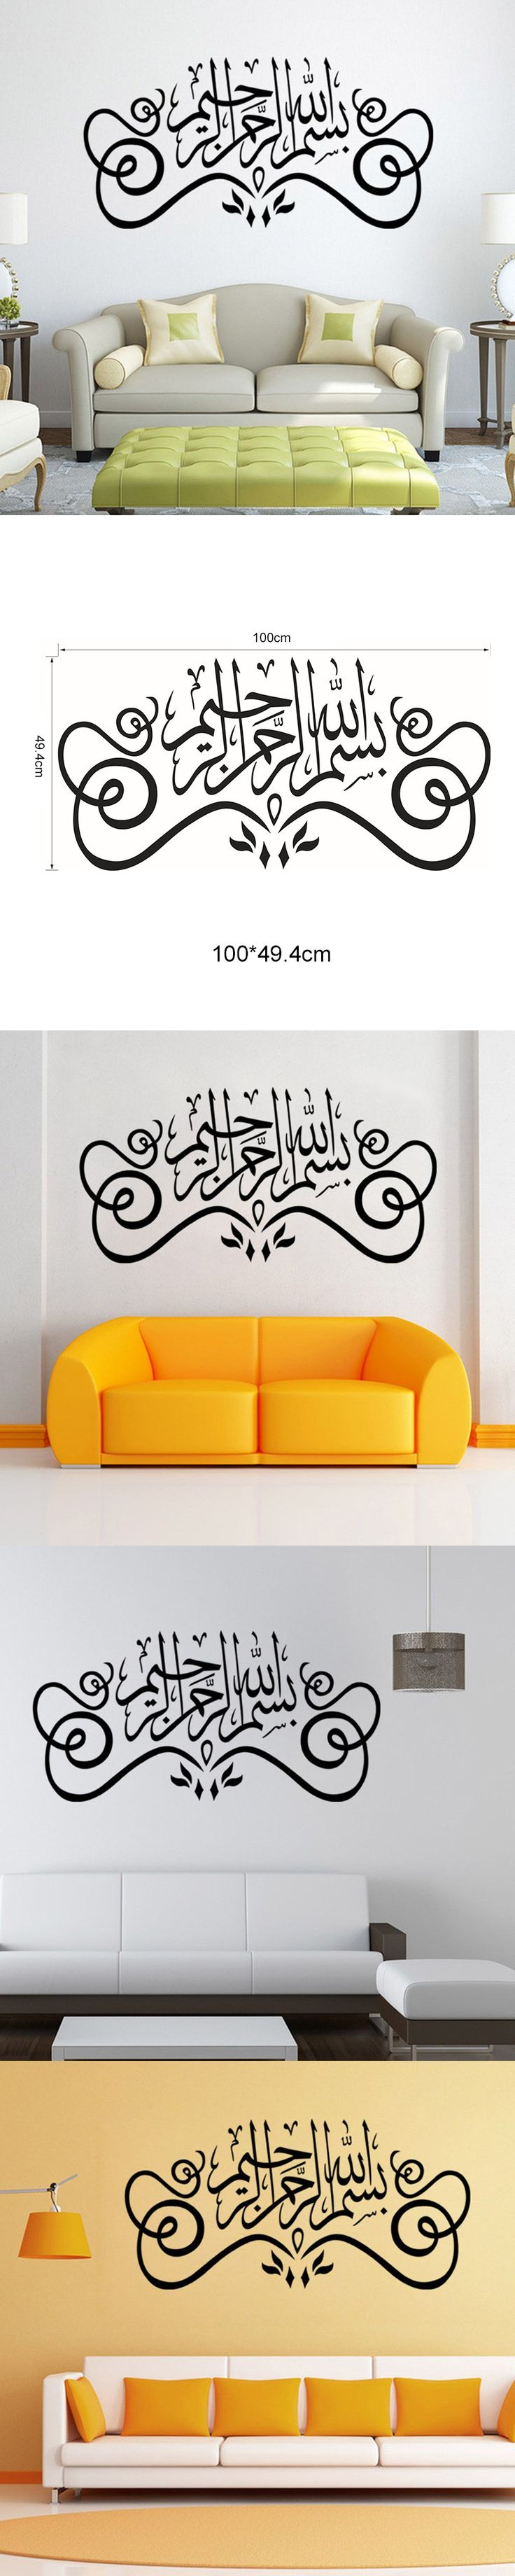 Hot Islamic Wall Stickers Muslim Arabic Character Home Decor Wall Decals Creative Mural Waterproof Removable Stickers 100*49.4cm $10.71